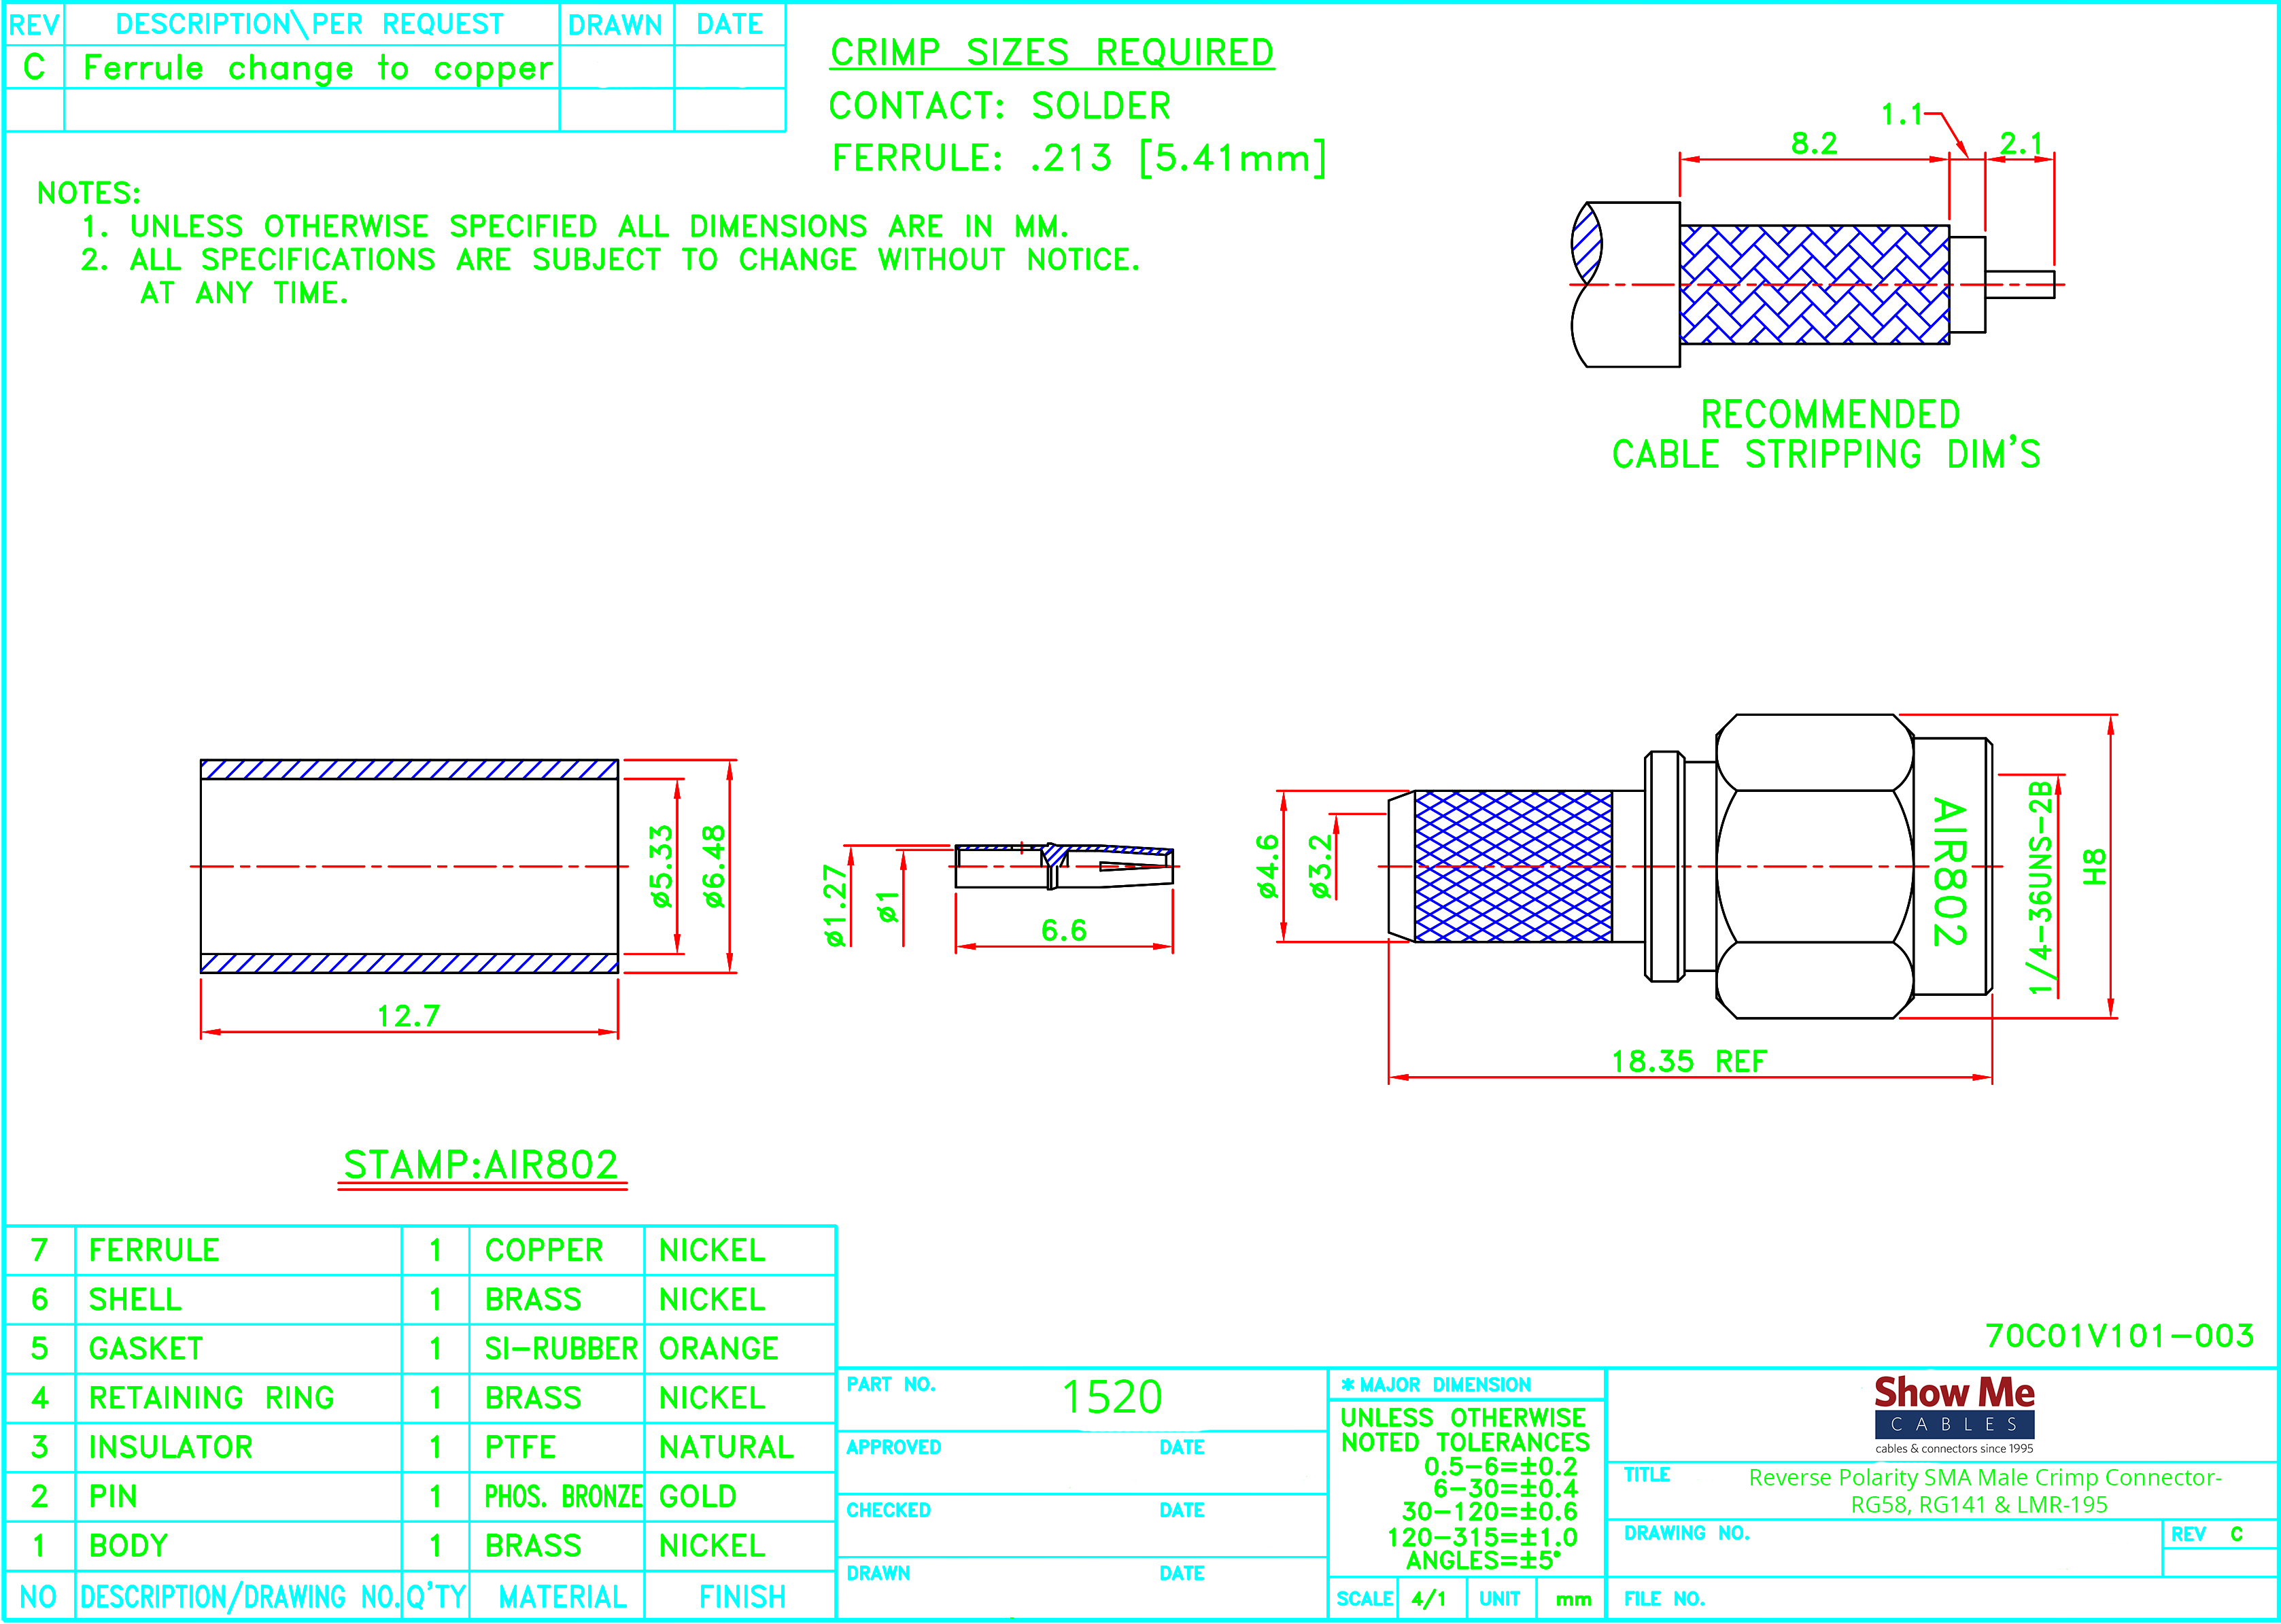 Reverse Polarity Sma Male Crimp Connector Rg58 Rg141 Lmr 195 Rj45 Wiring Variations Click Here To Download The Spec Sheet